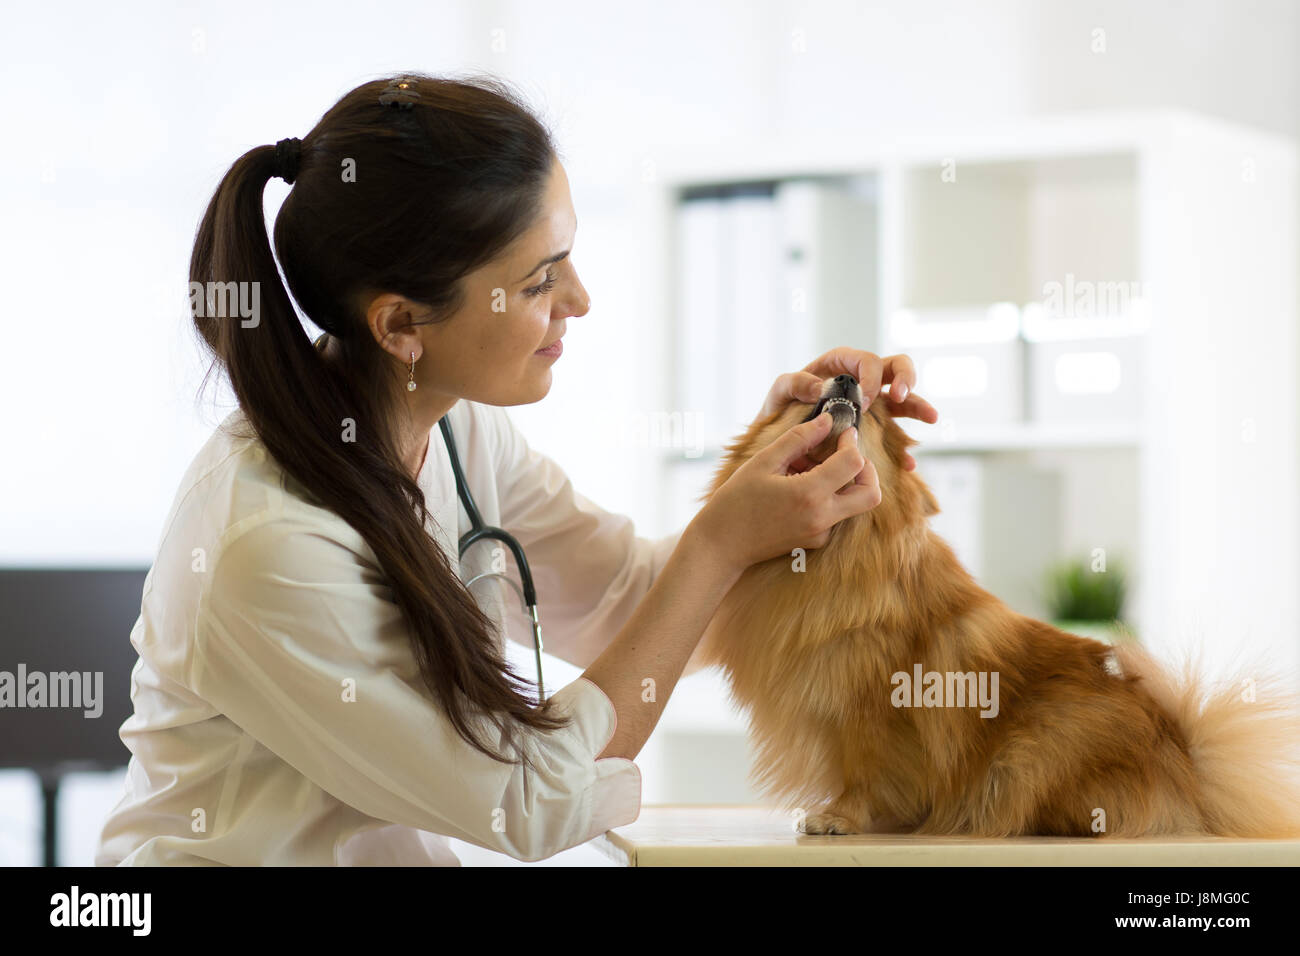 Female veterinarian examining teeth of Spitz dog in clinic - Stock Image